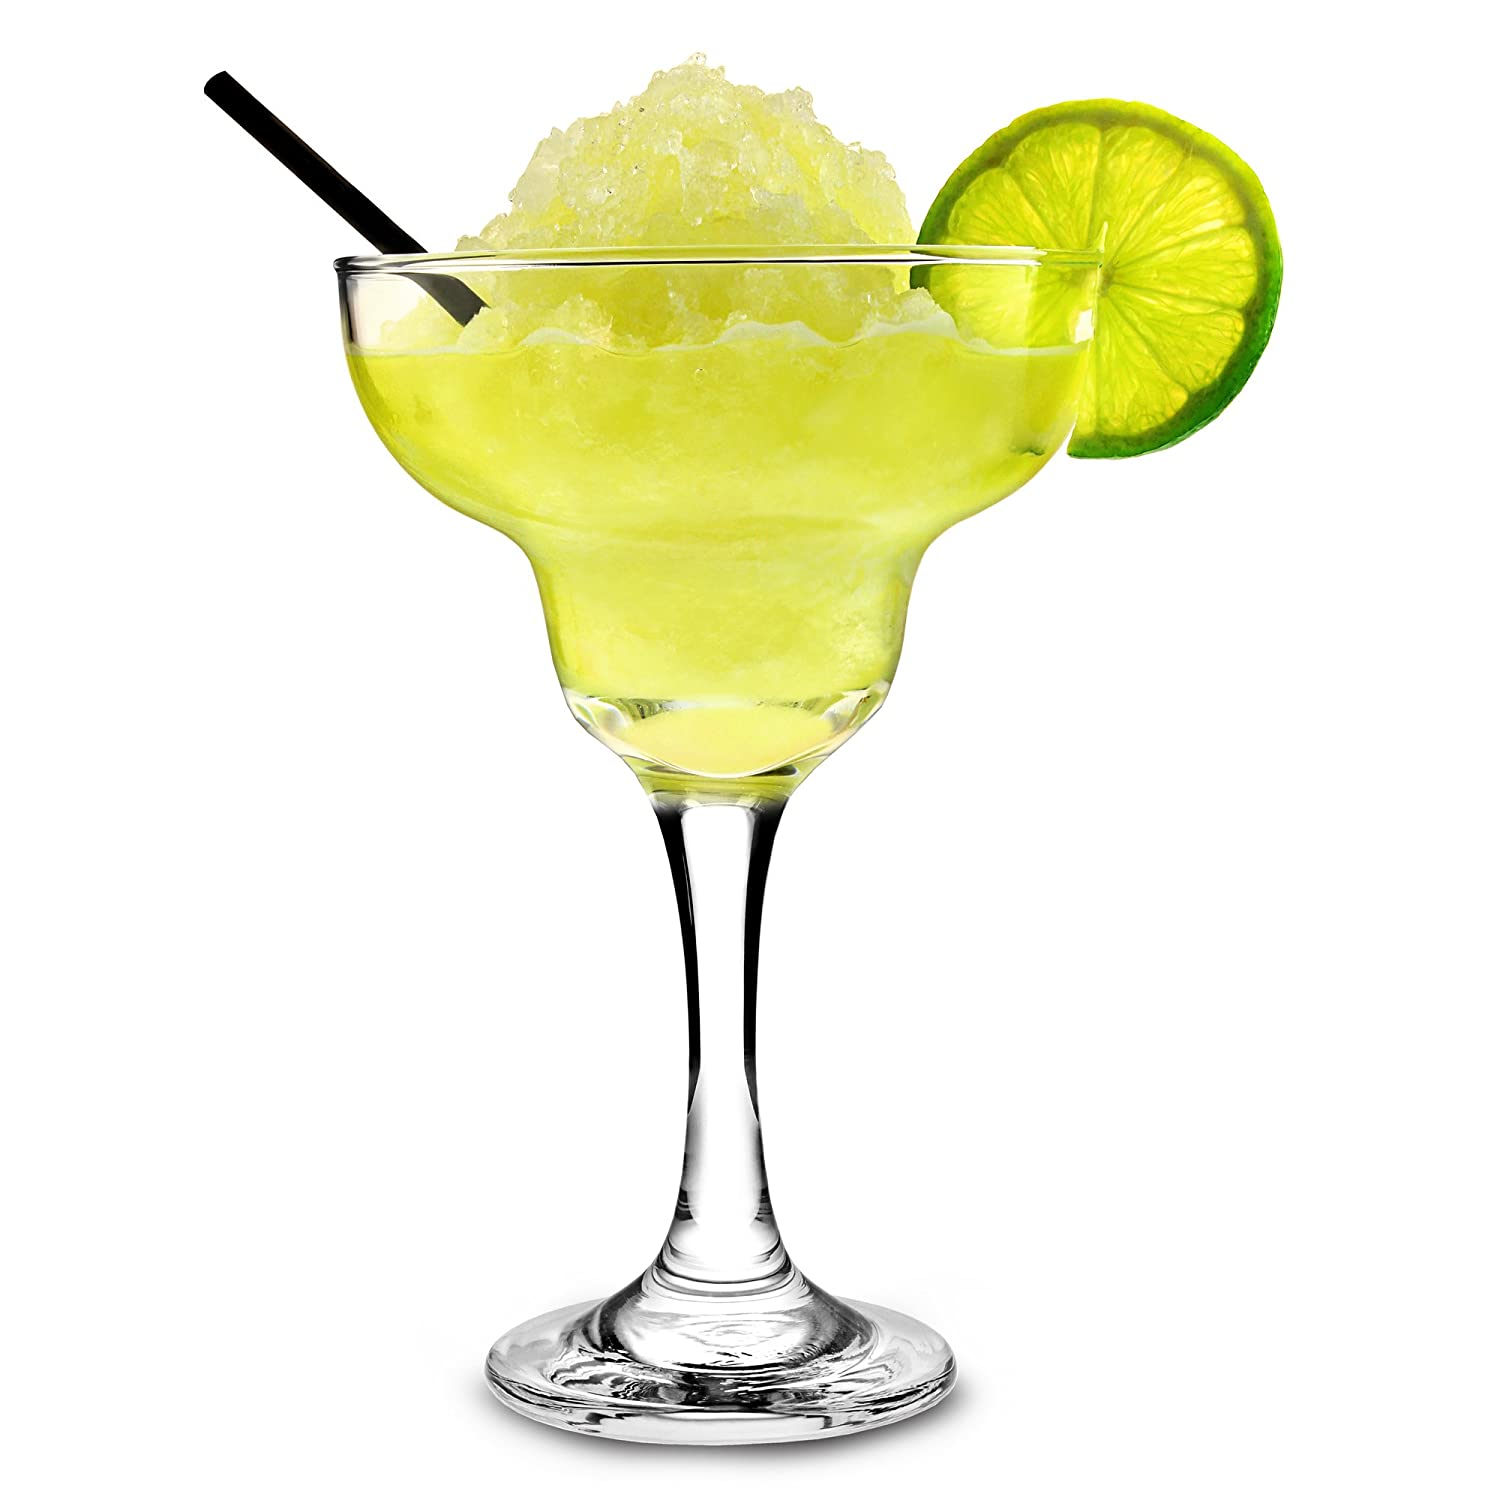 bar@drinkstuff City Margarita Cocktail Glasses 12.7oz/360ml - Pack of 24 - Gift Boxed Coupe Glassware